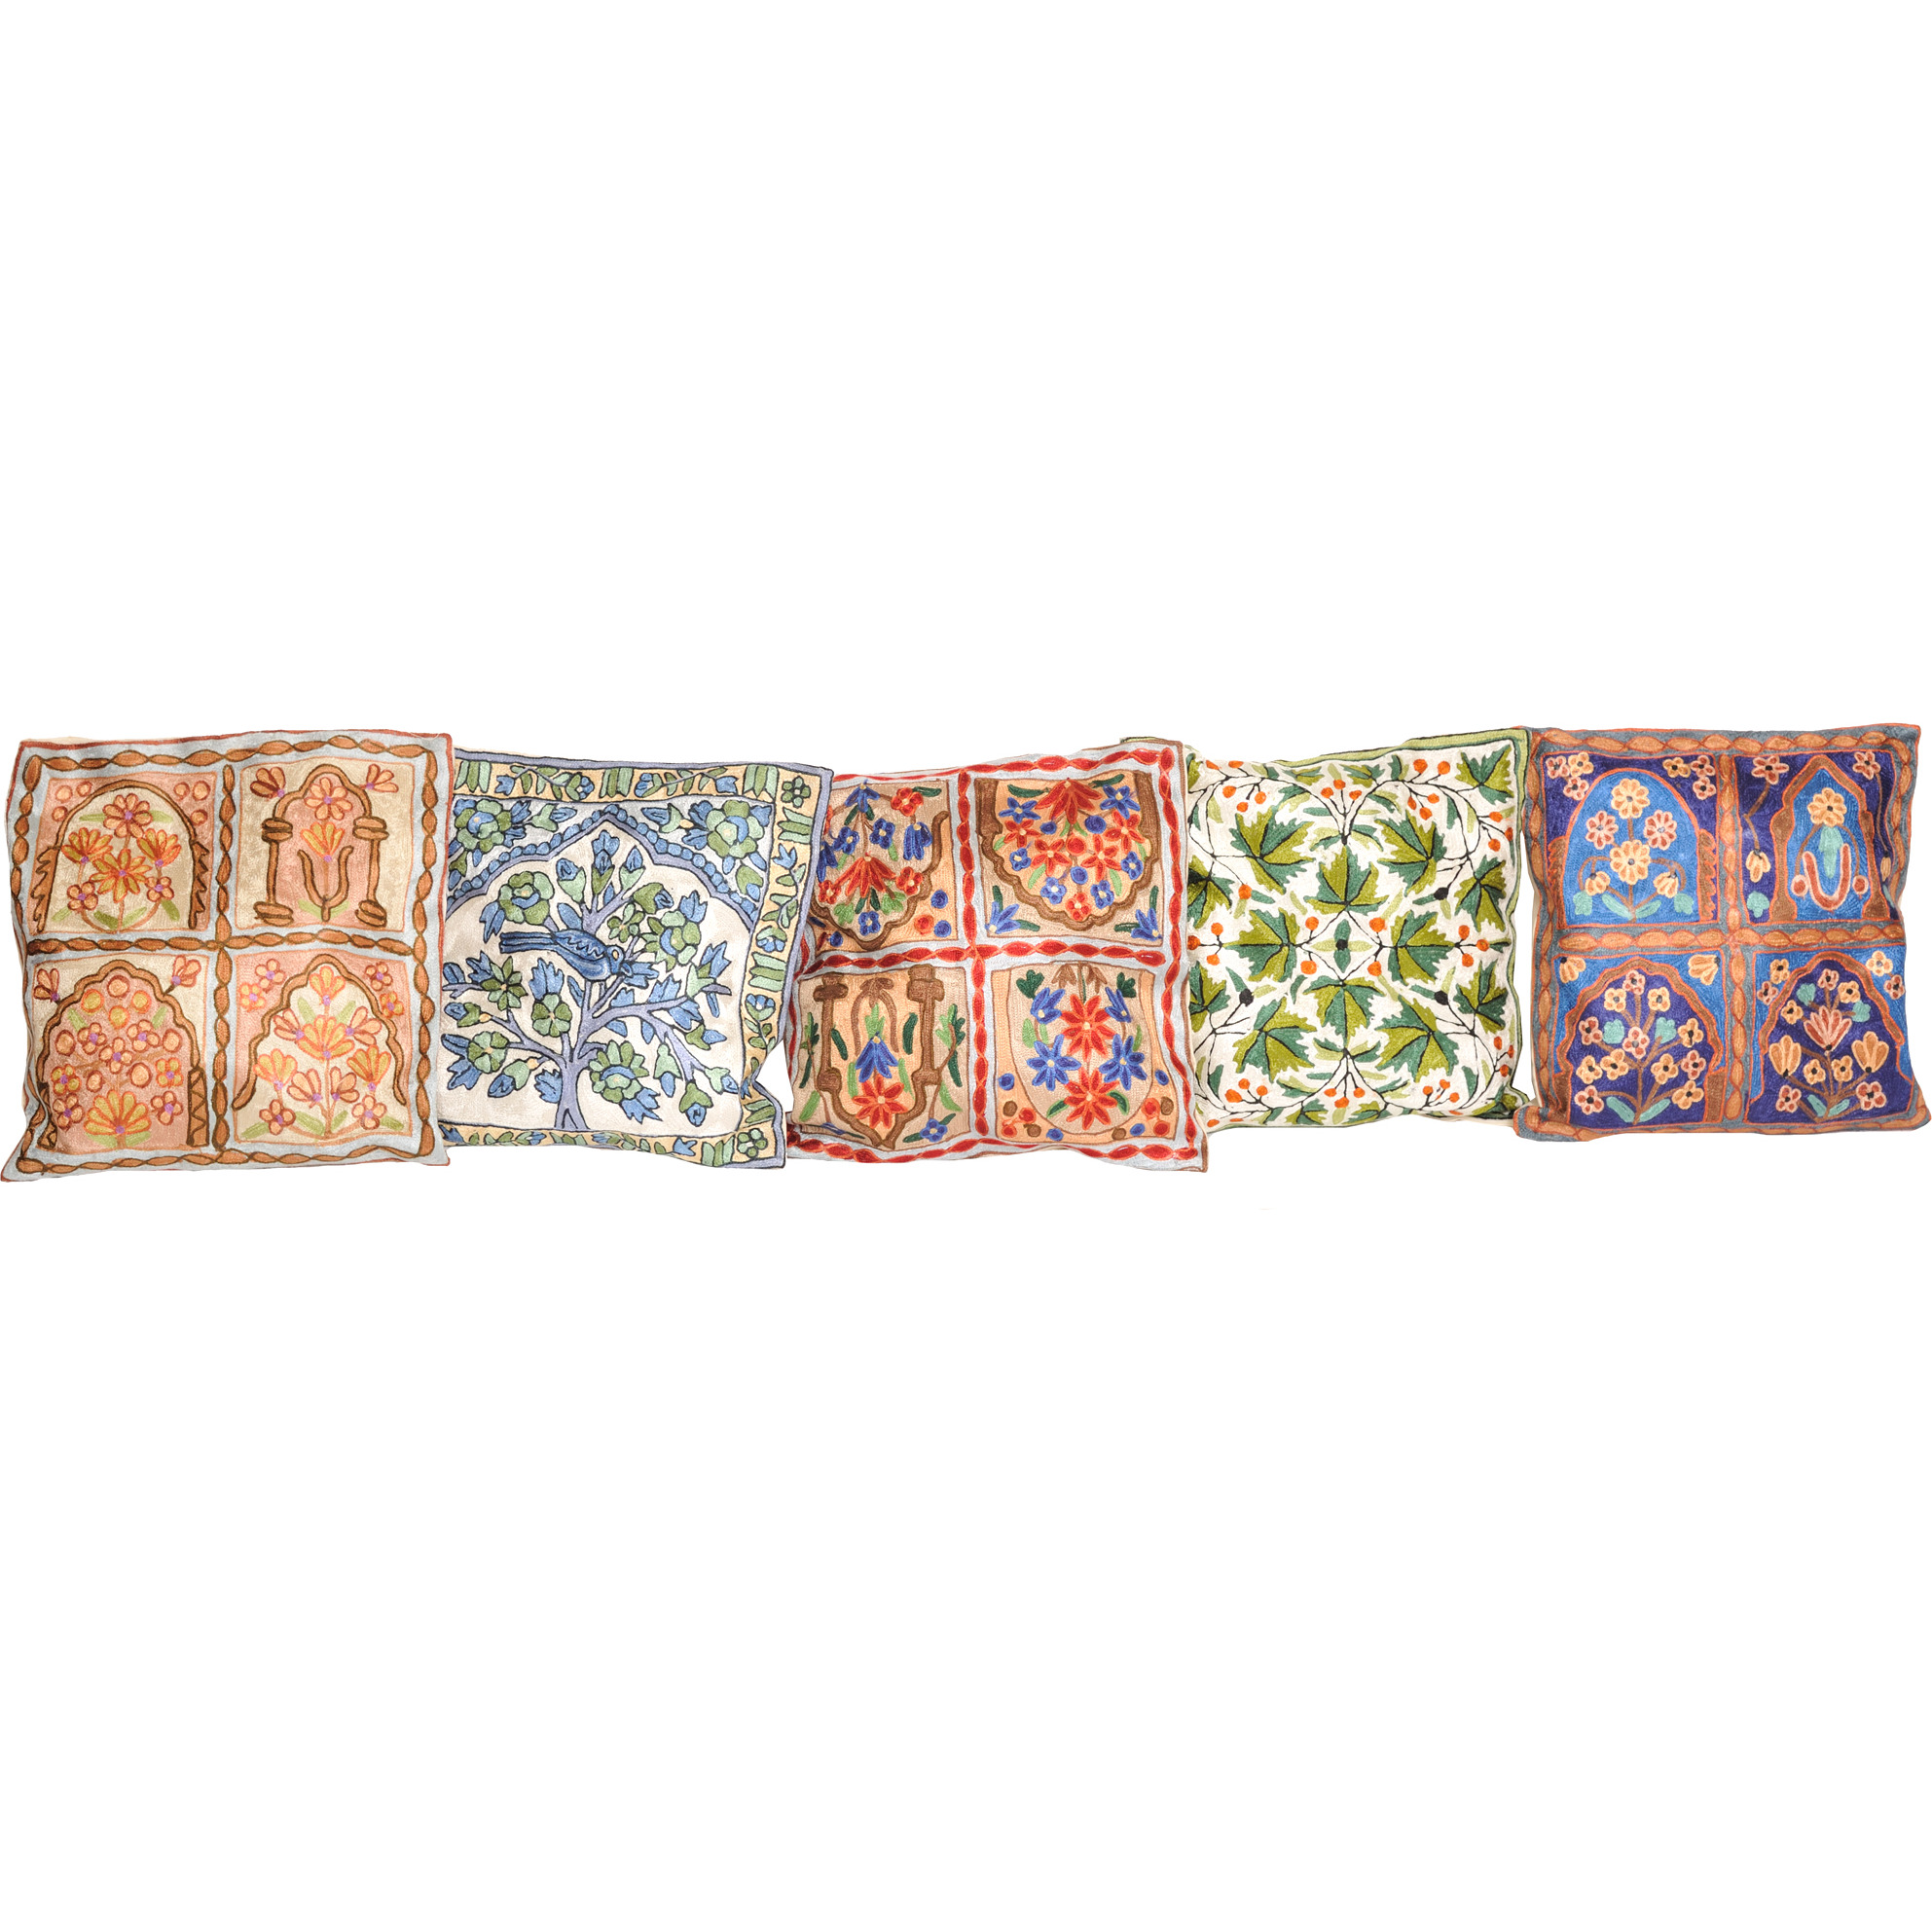 Lot of Five Cushion Covers from Kashmir with Dense Chain-Stitch Embroidery